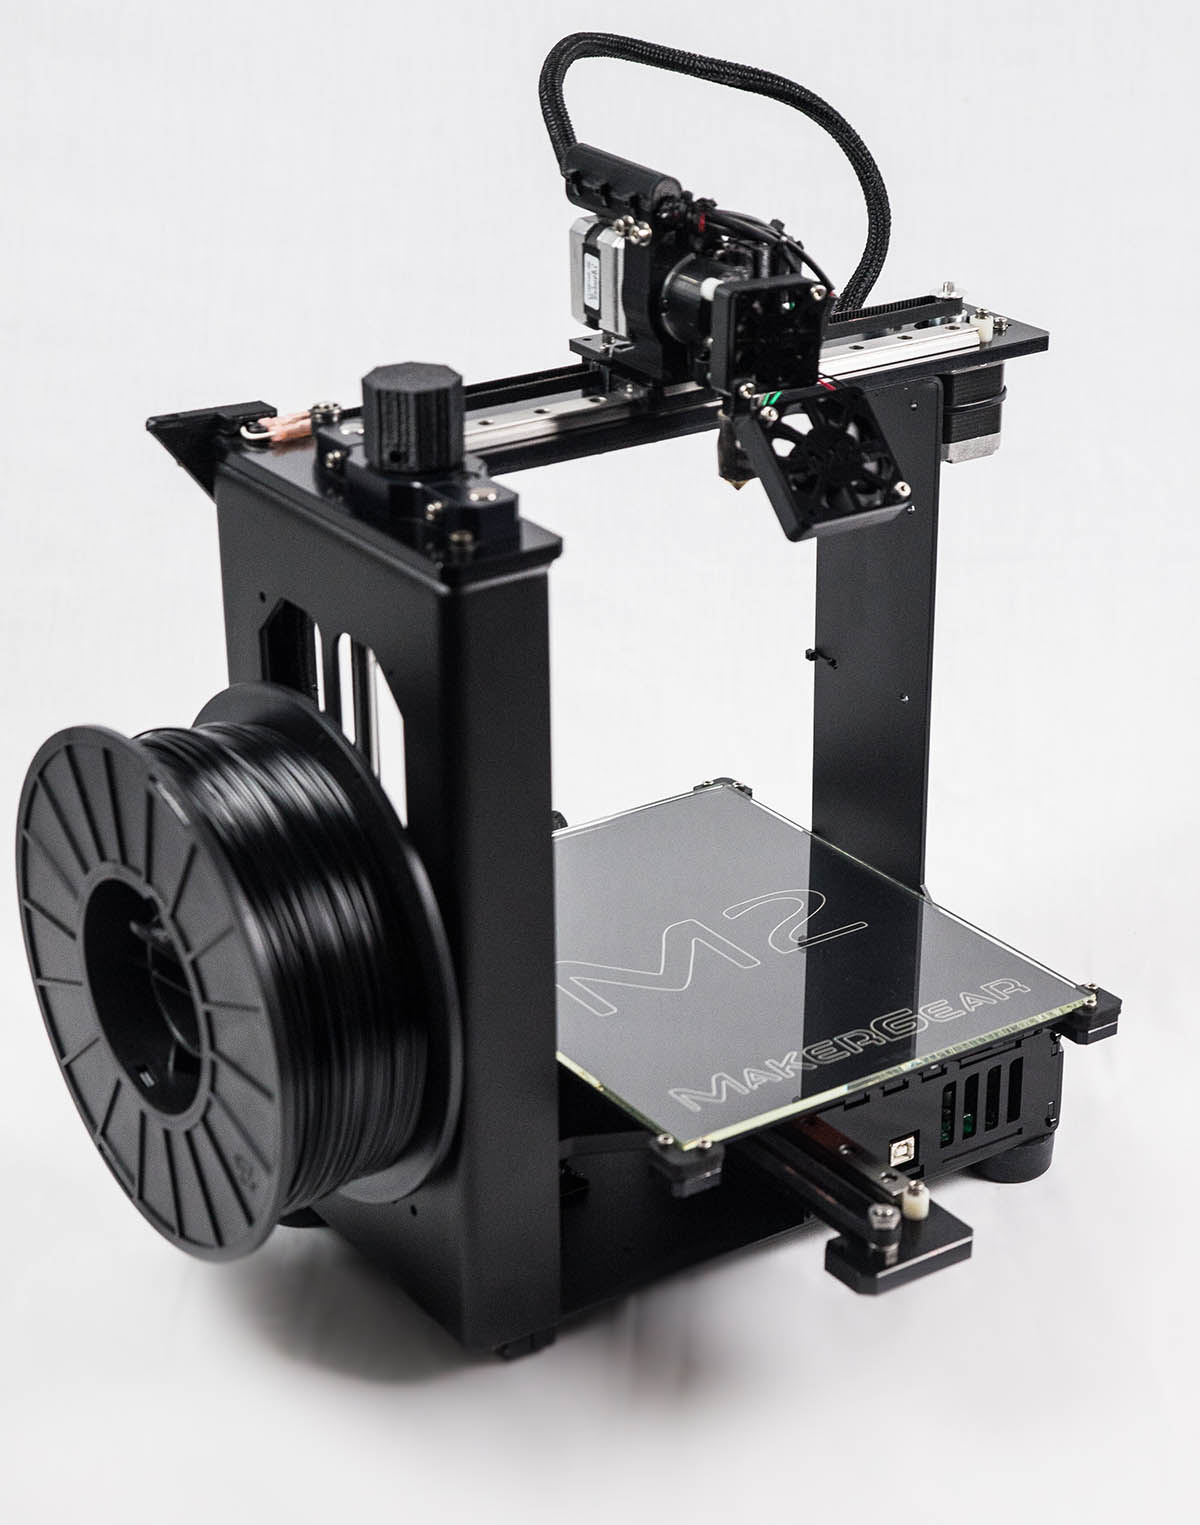 le cinque migliori stampanti 3d secondo startmag makergear m2 flashforge creator pro. Black Bedroom Furniture Sets. Home Design Ideas